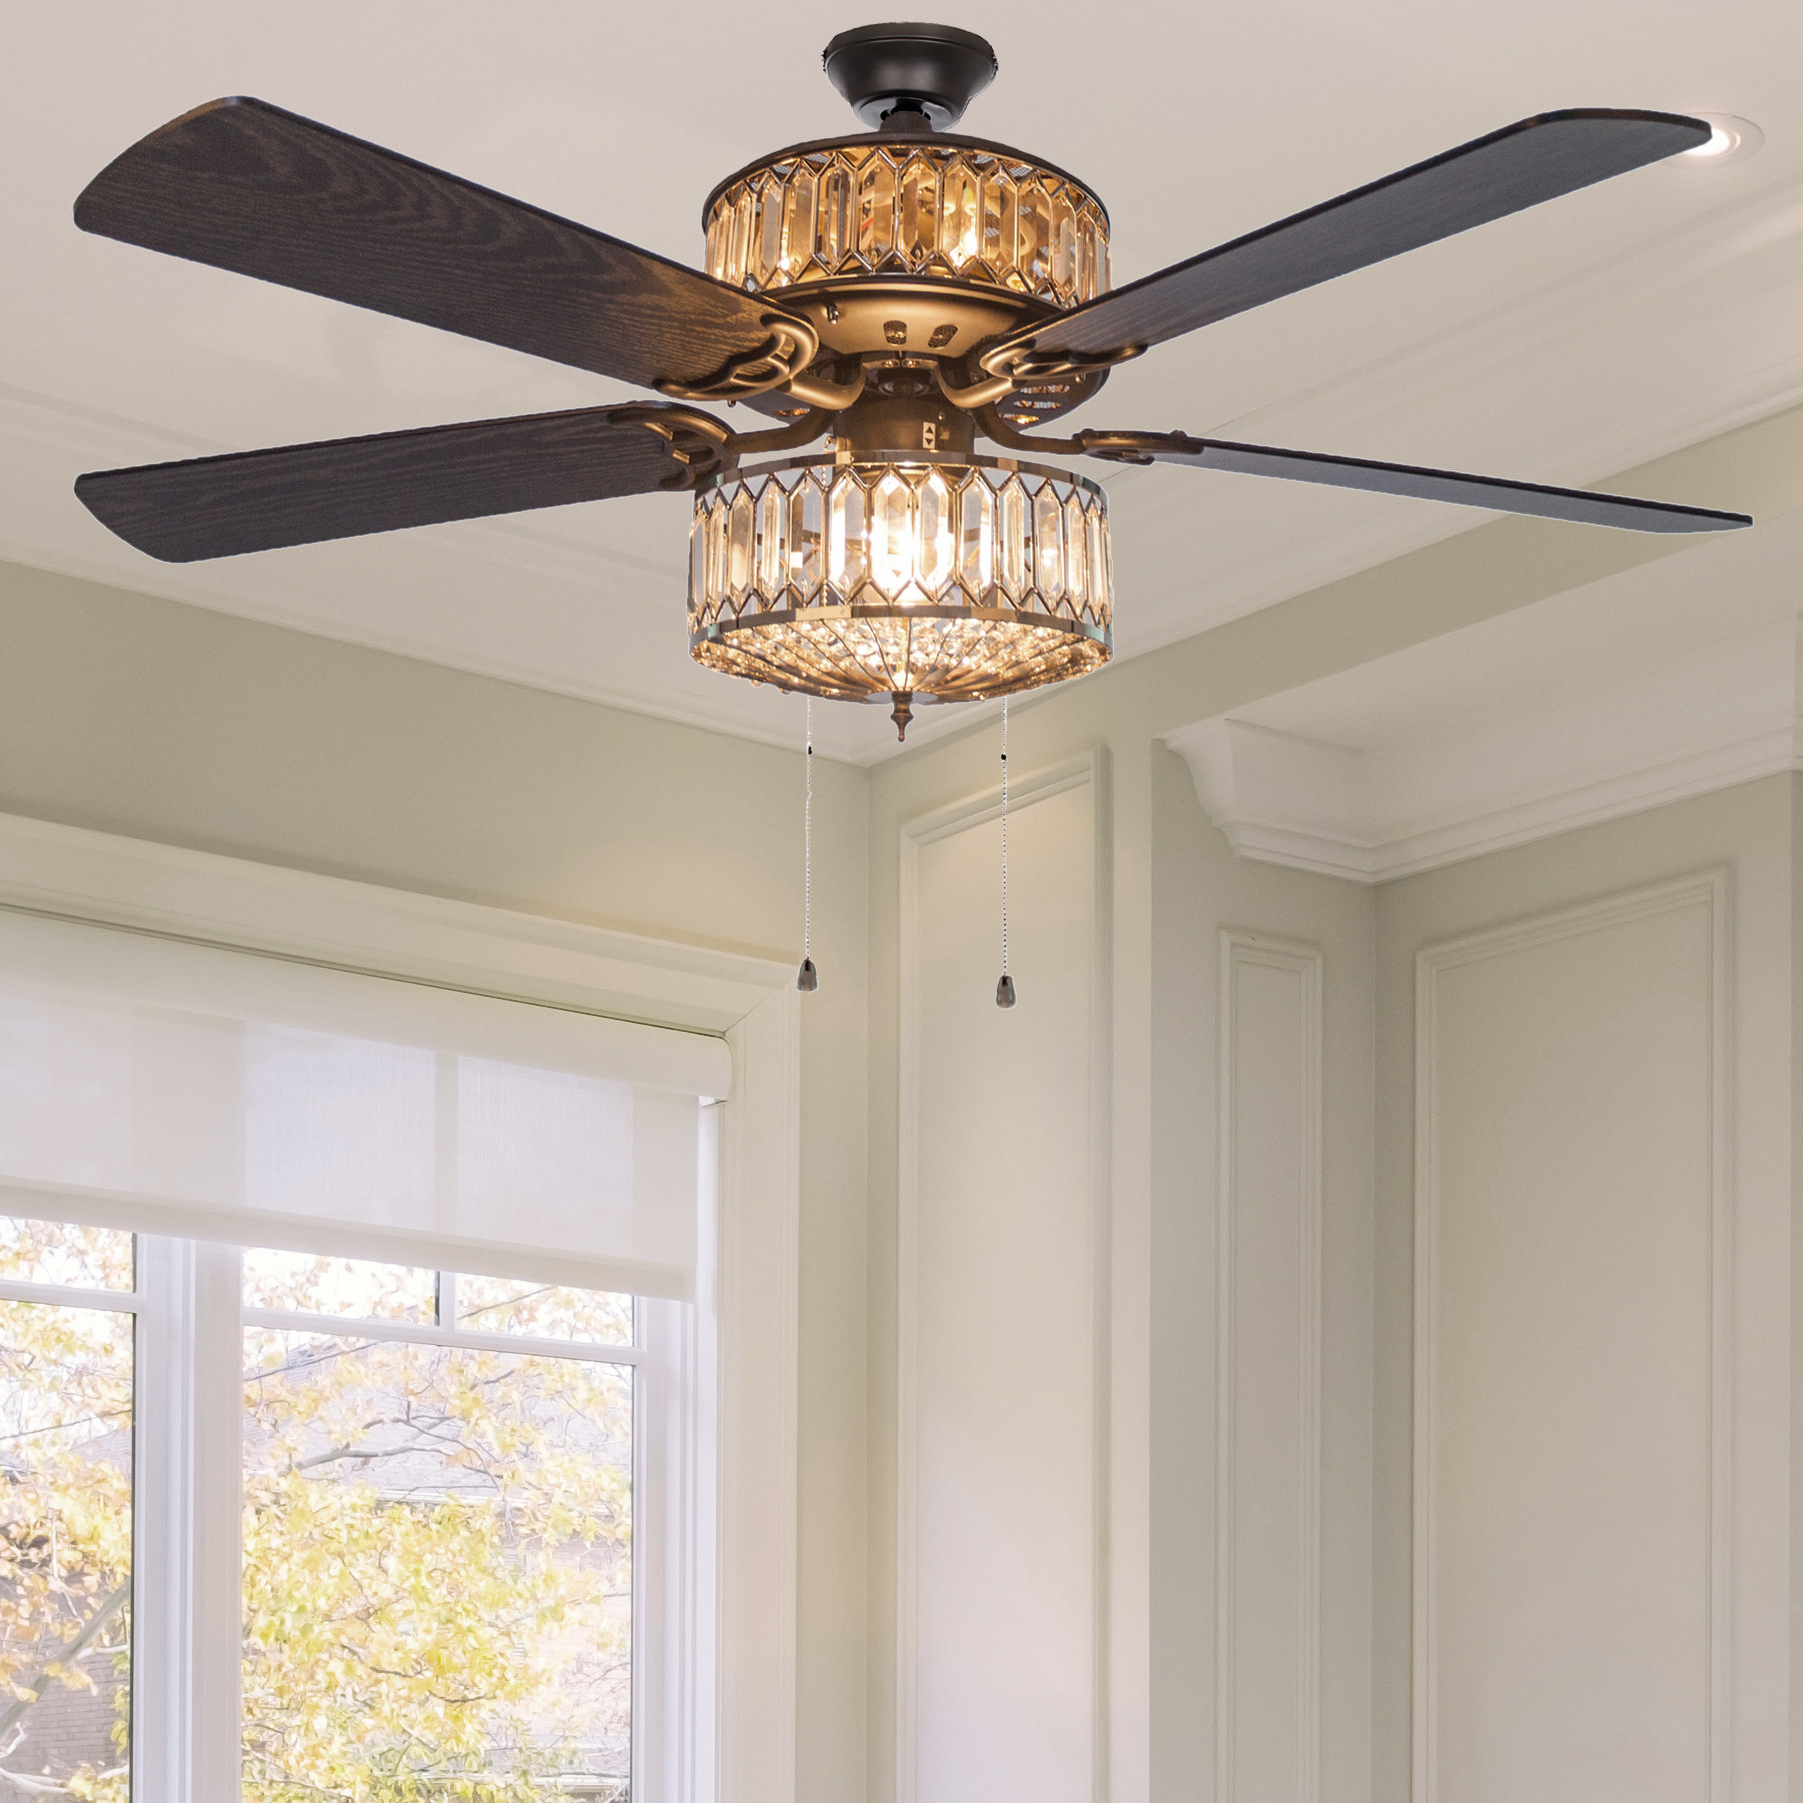 """House Of Hampton 52"""" Norah 5 Blade Ceiling Fan With Remote Throughout 2019 Njie Caged Crystal 5 Blade Ceiling Fans (Gallery 12 of 20)"""